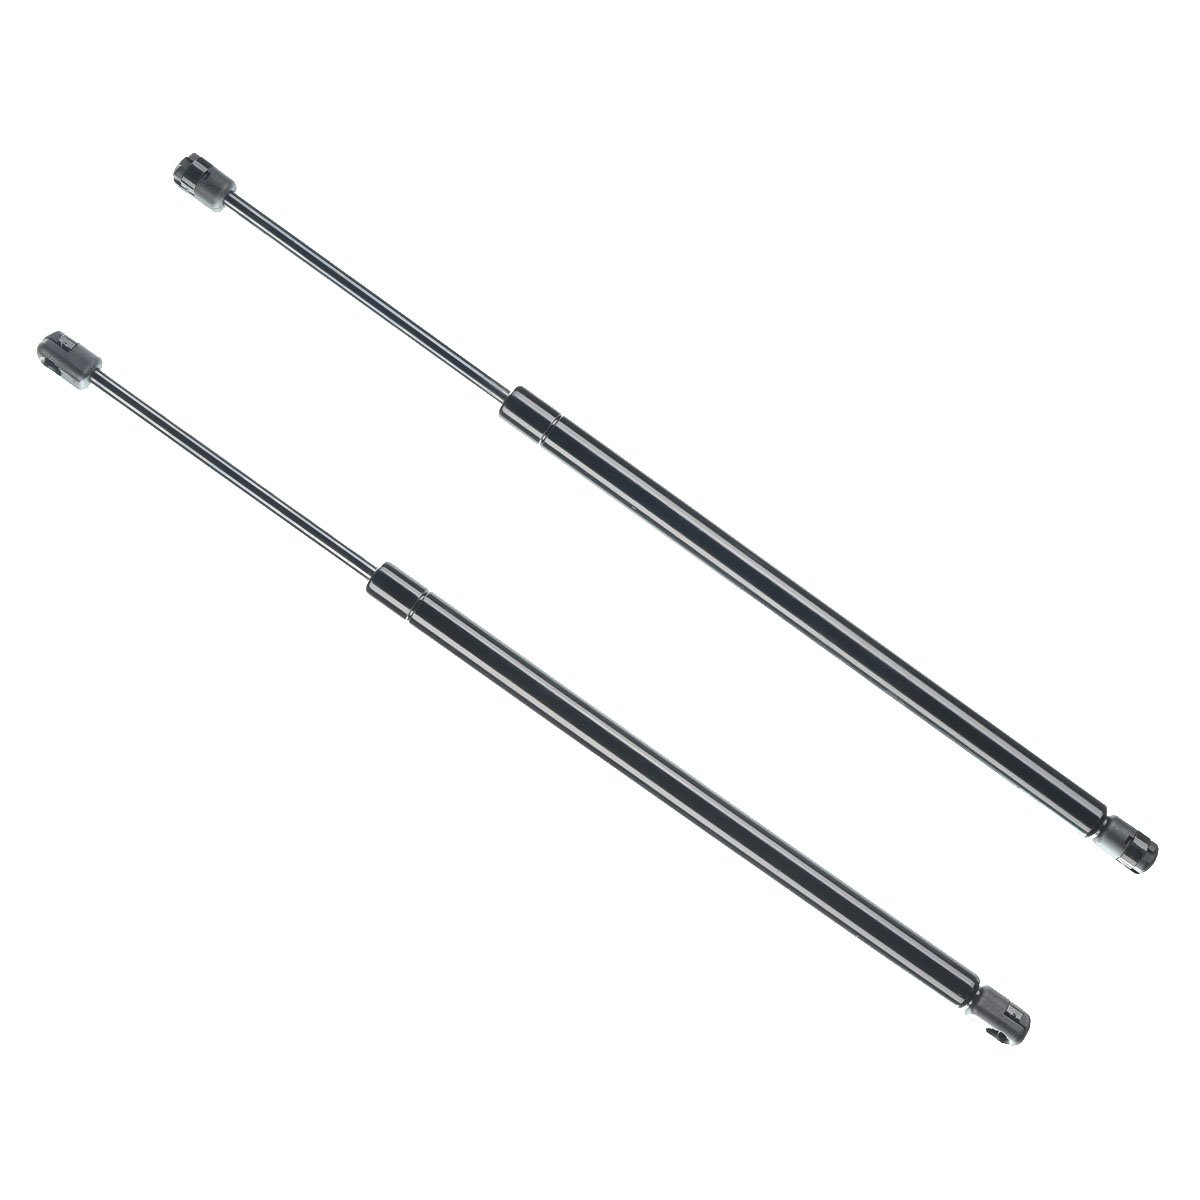 A-Premium Tailgate Rear Hatch Lift Supports Shock Struts Springs for Jeep Compass 2007-2014 with Speakers 2-PC Set